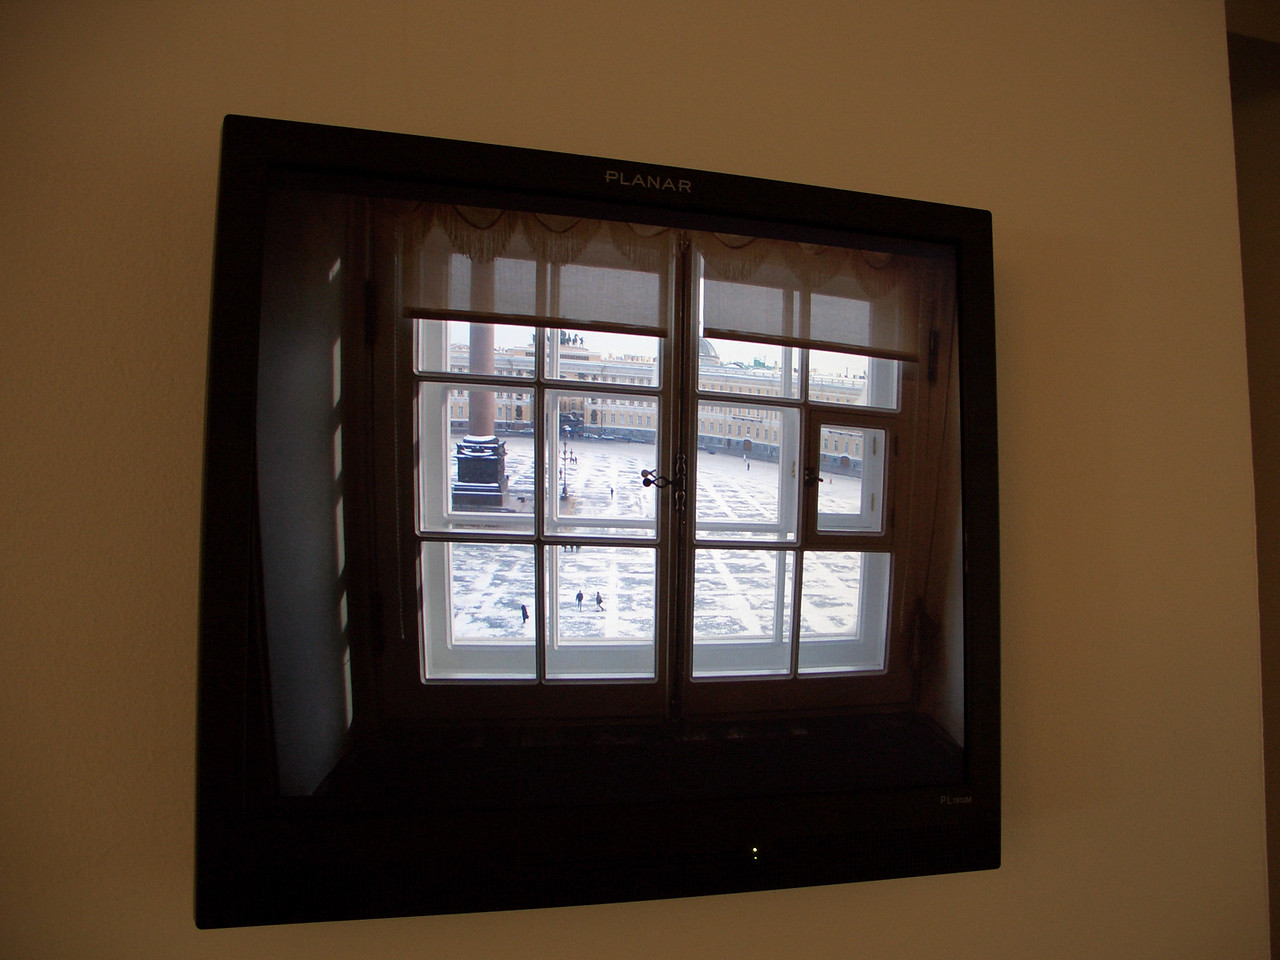 Some fun with the content can be had.  This is actually a window looking out of the Hermitage Museum in Saint Petersburg.